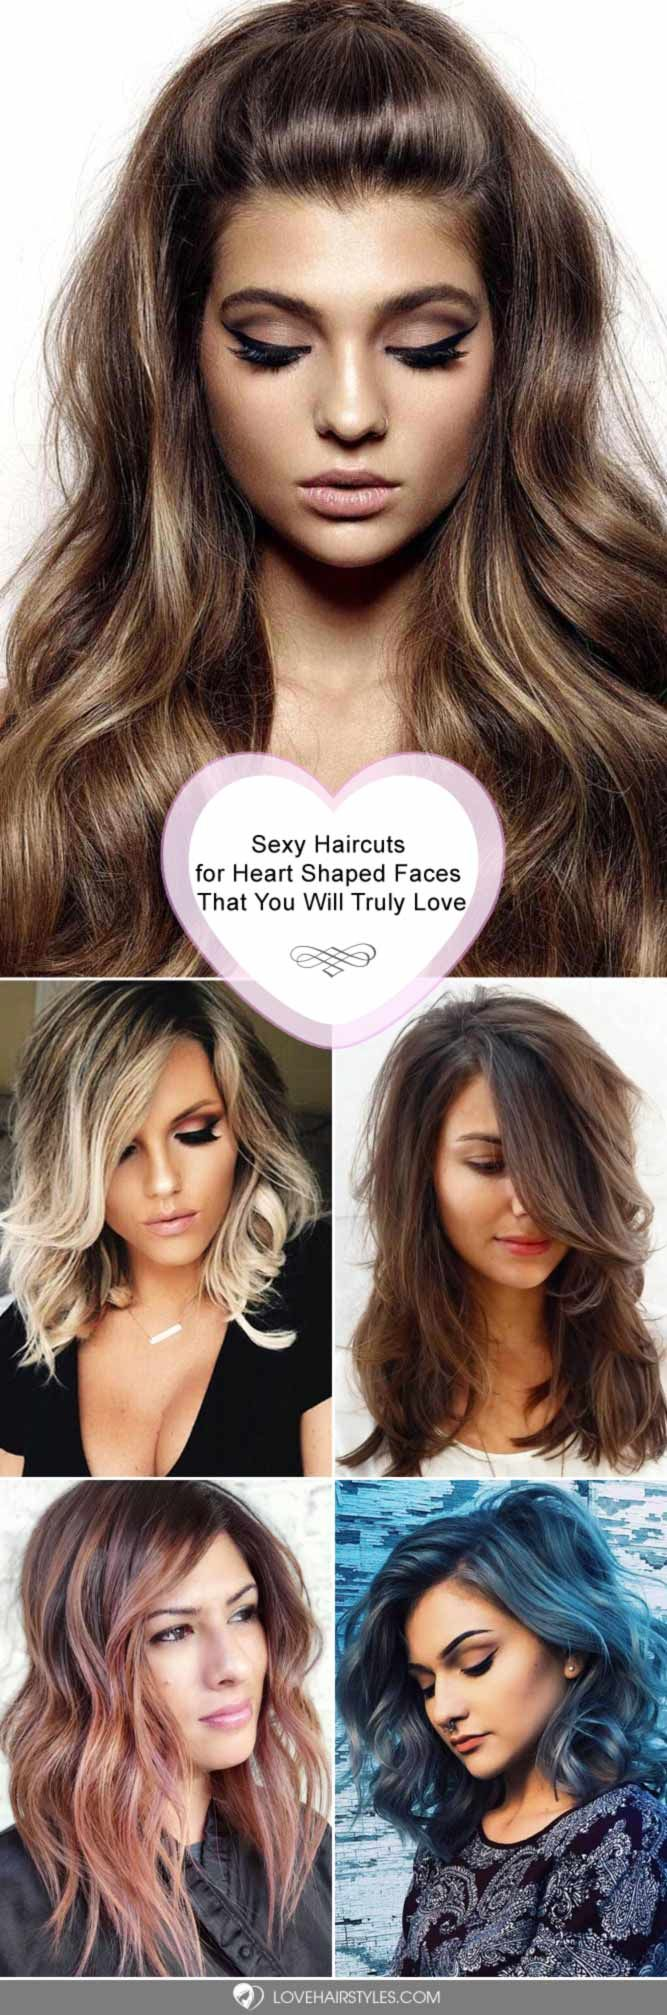 10 Gorgeous Haircuts For Heart Shaped Faces Hair N Make Up